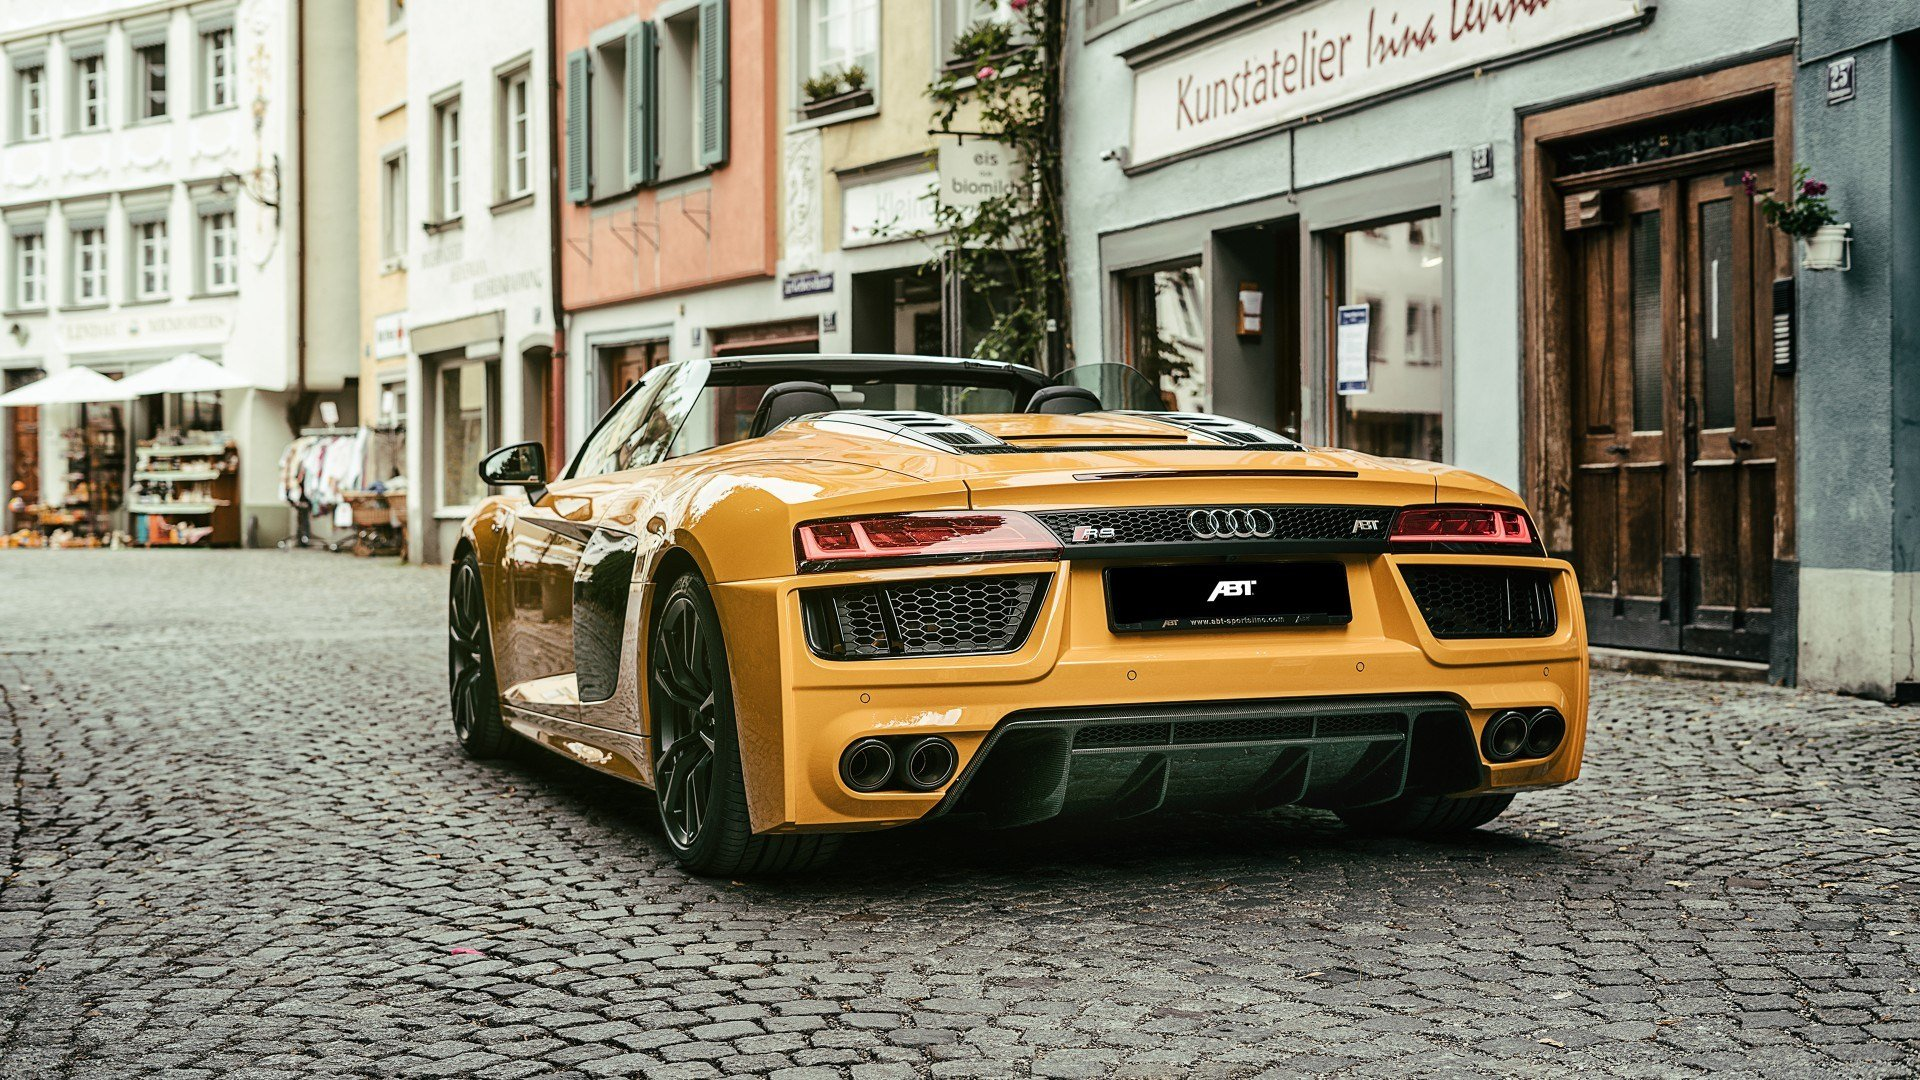 Latest 2017 Abt Audi R8 Spyder 4K 3 Wallpaper Hd Car Wallpapers Free Download